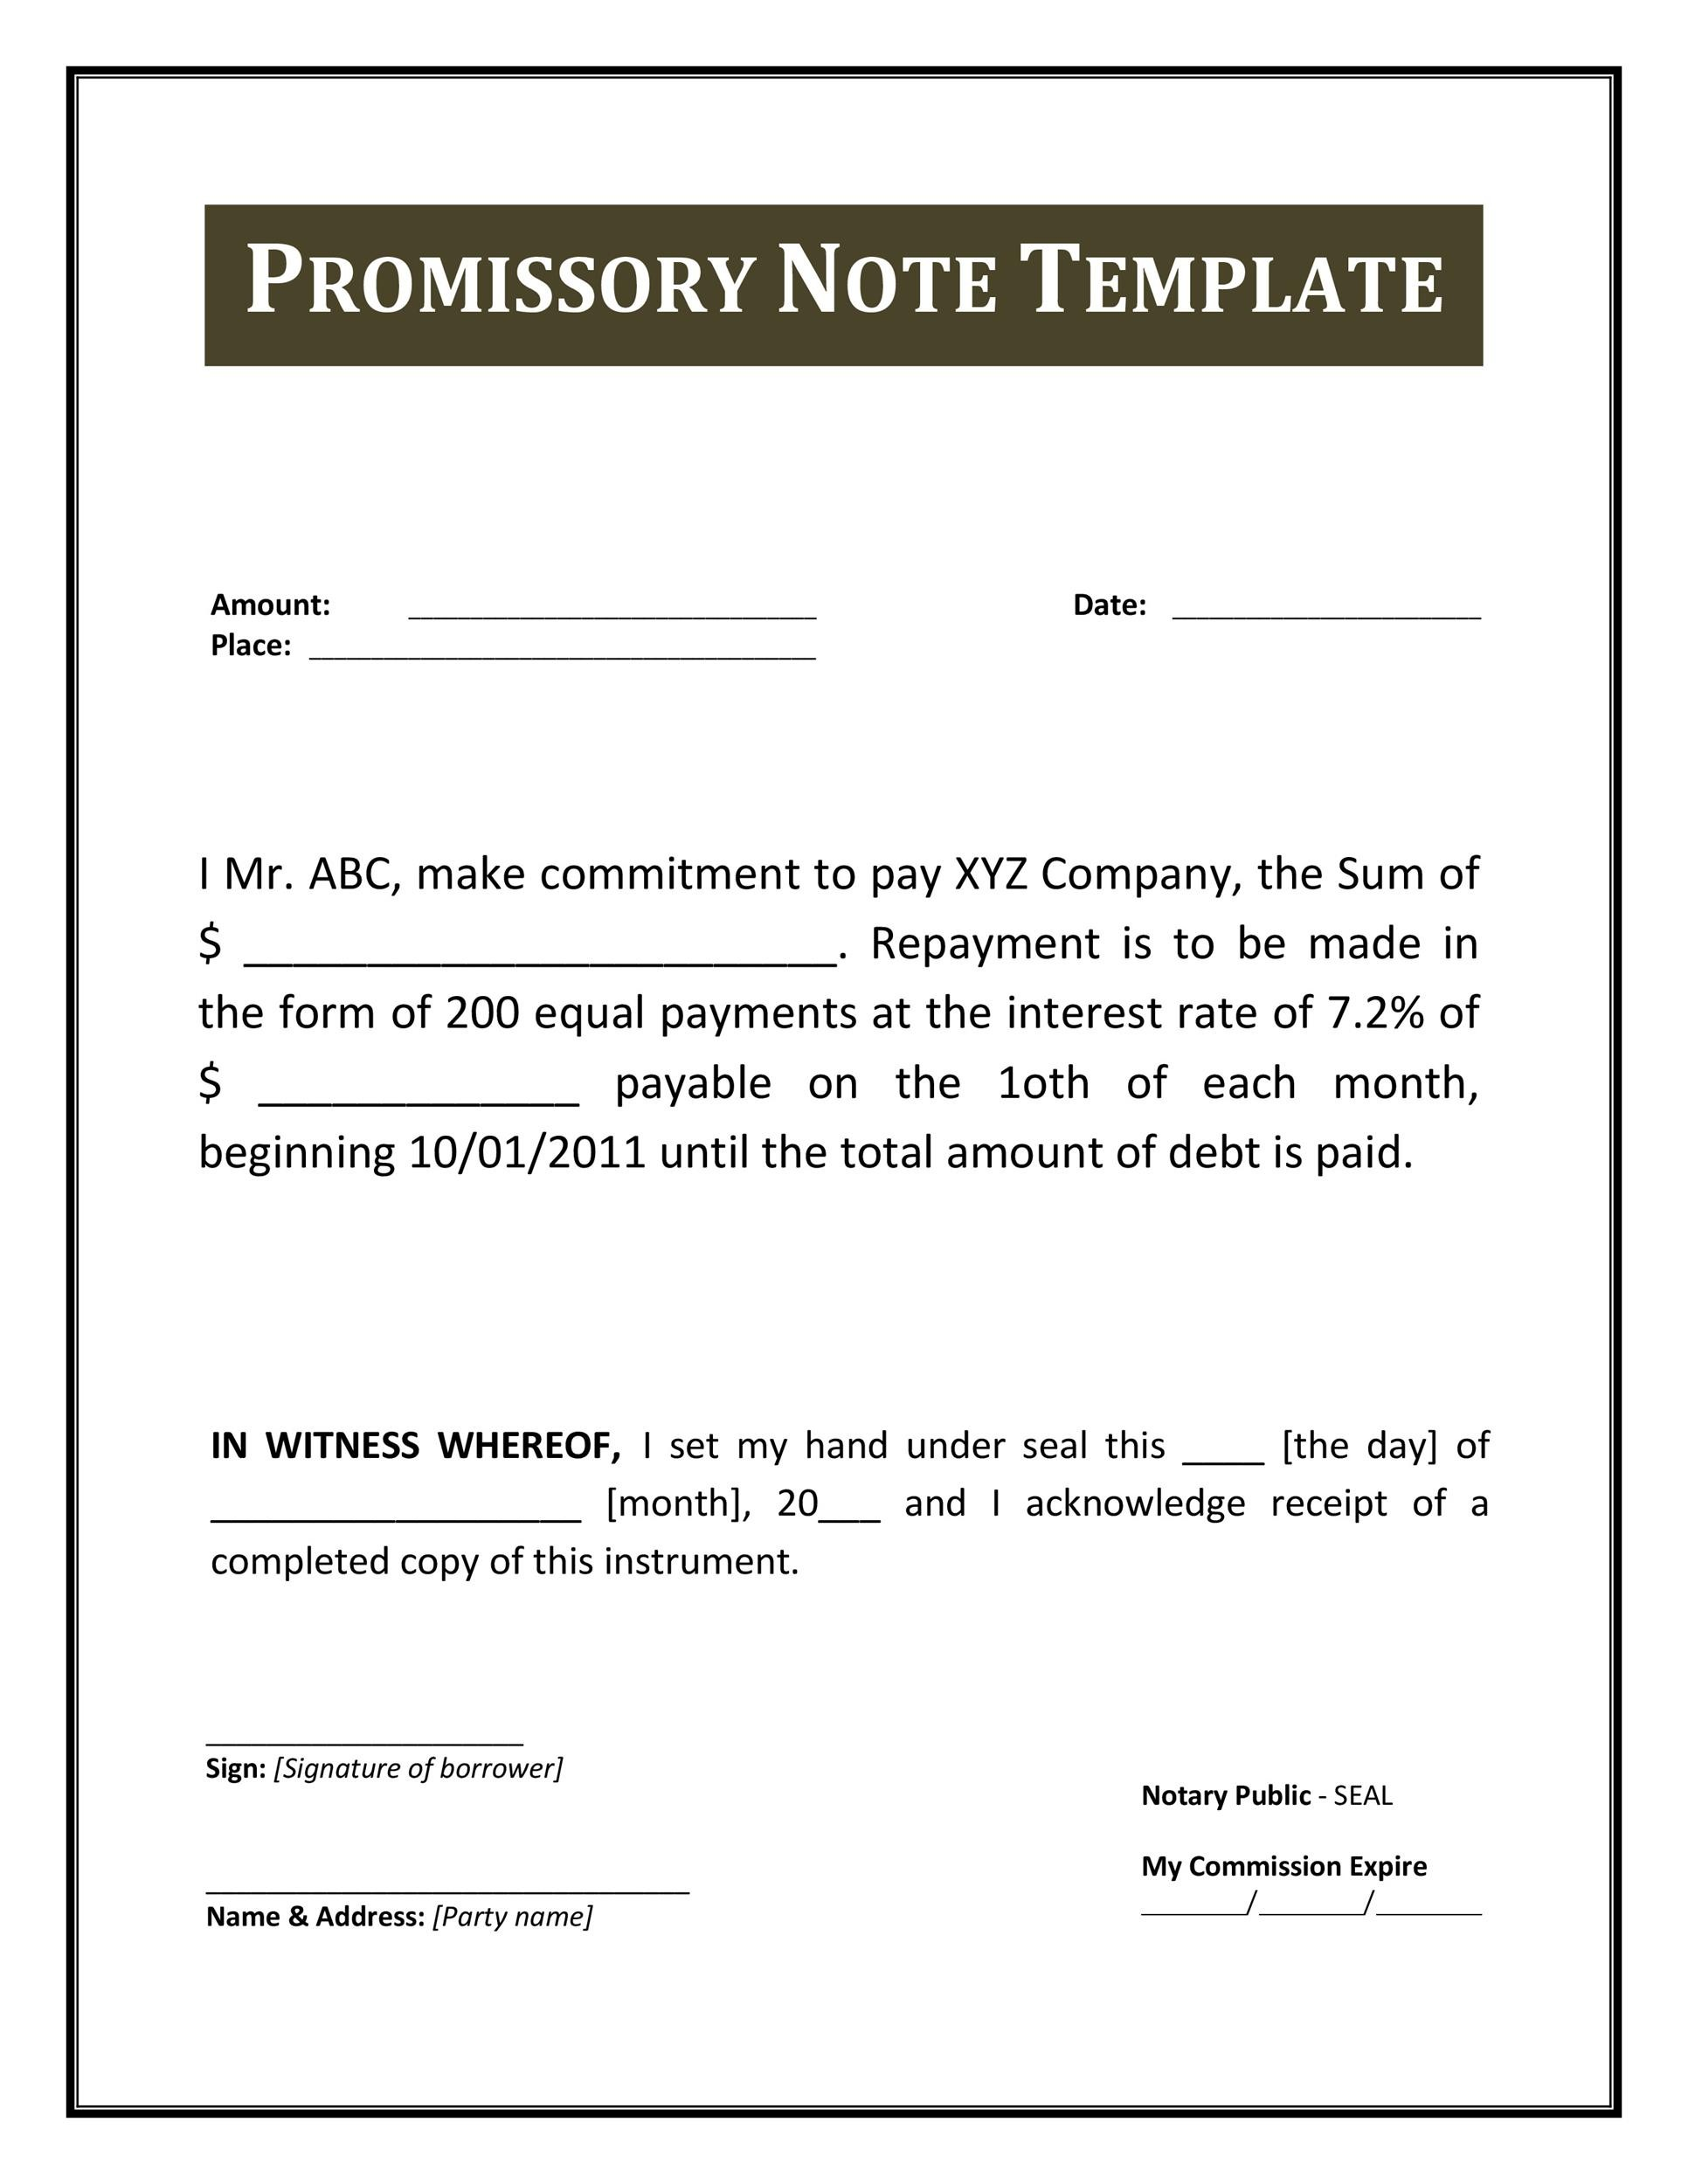 Printable Promissory Note Template 33 Pertaining To Promissory Note Samples